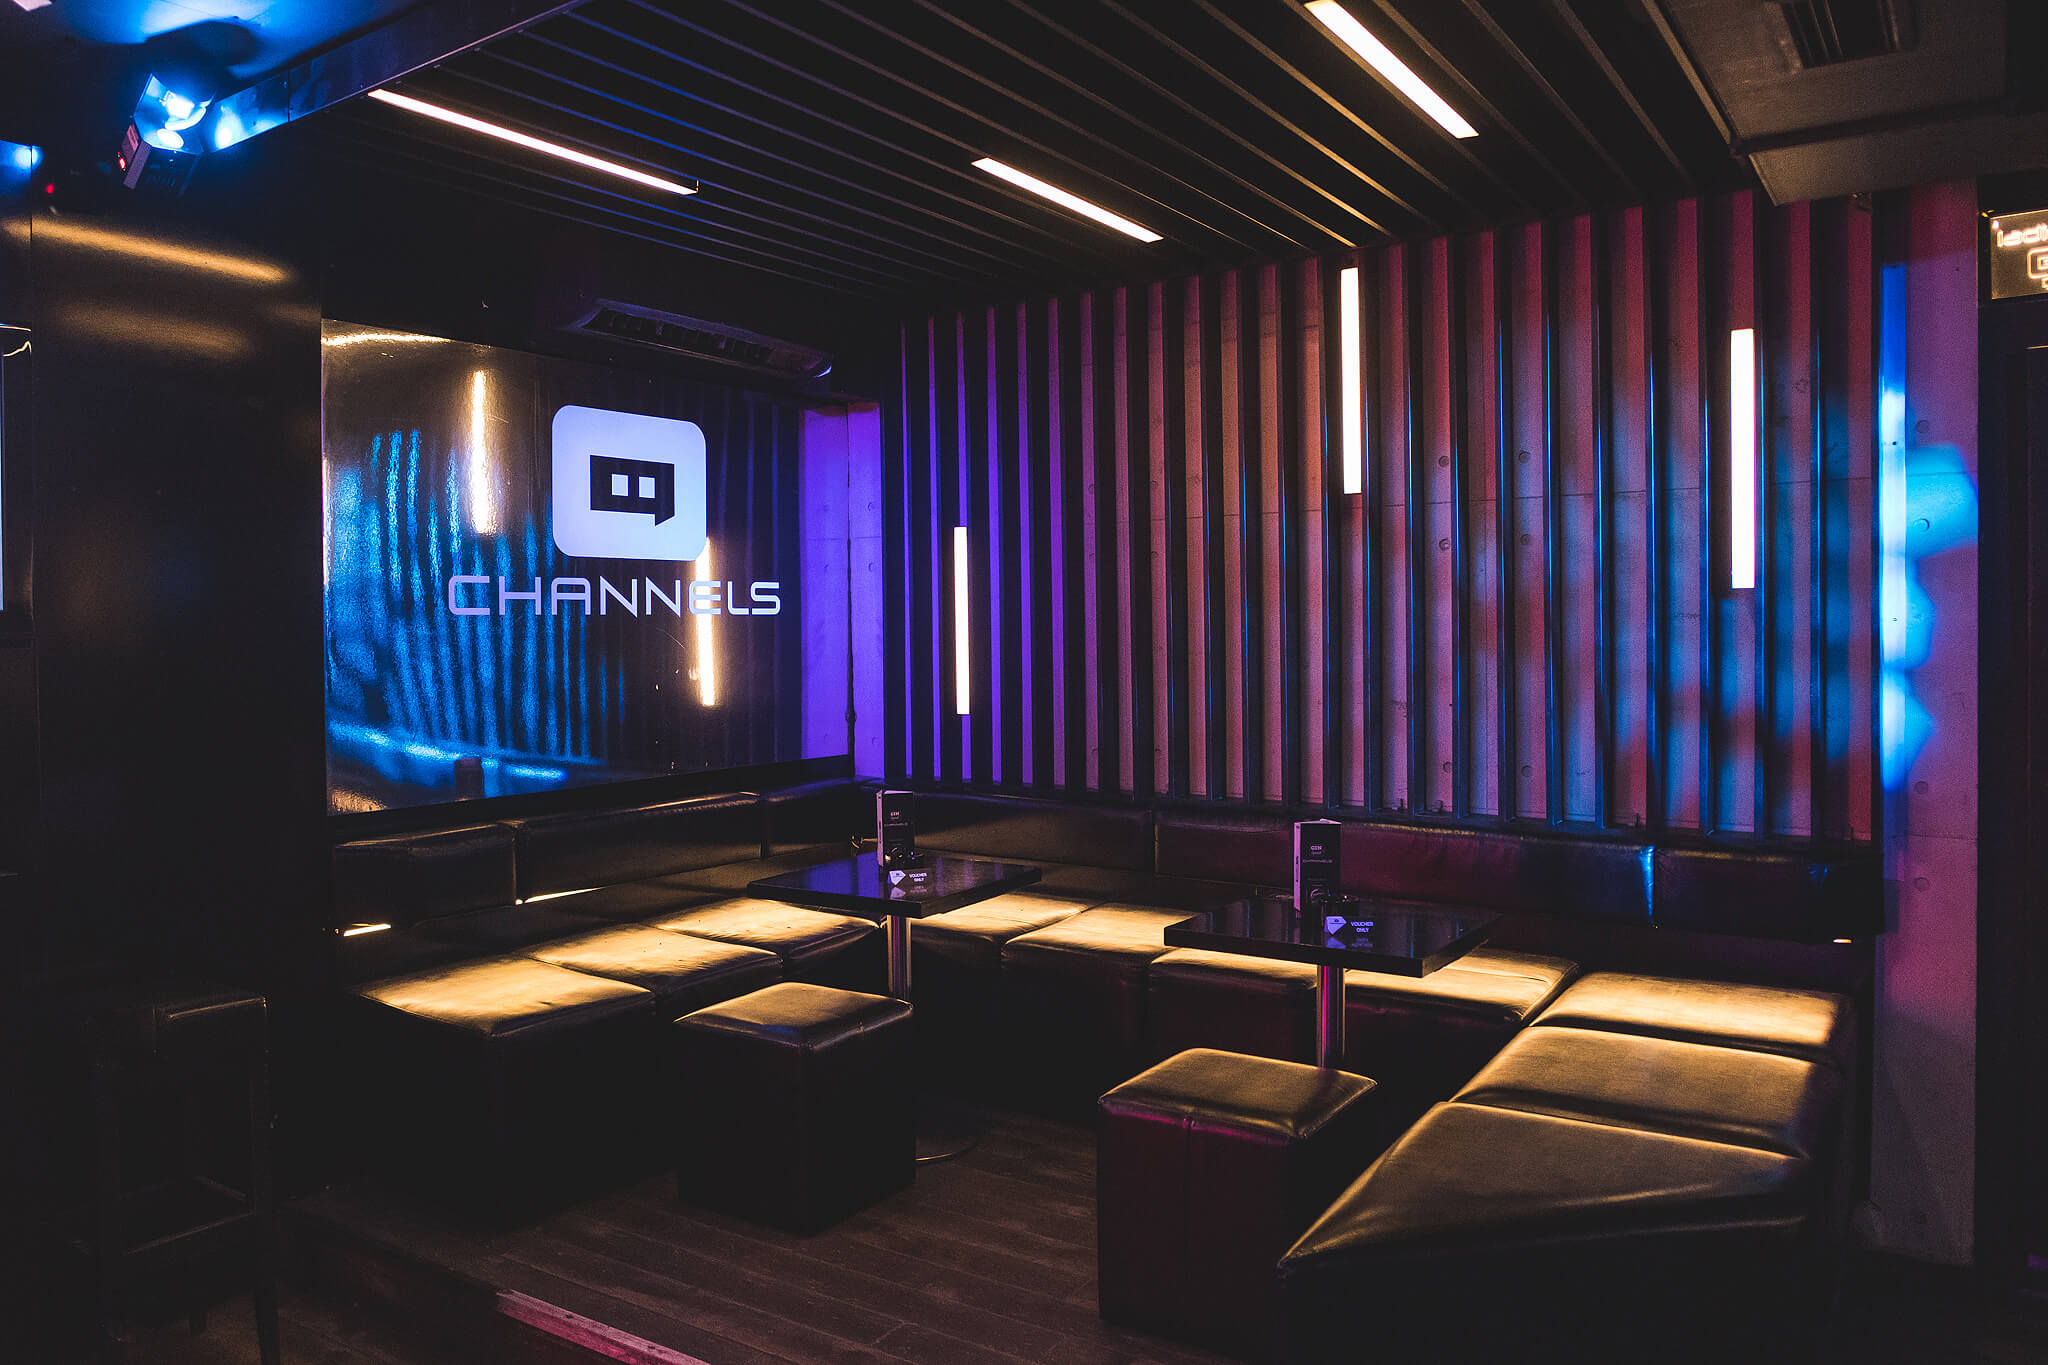 Channels club interior3